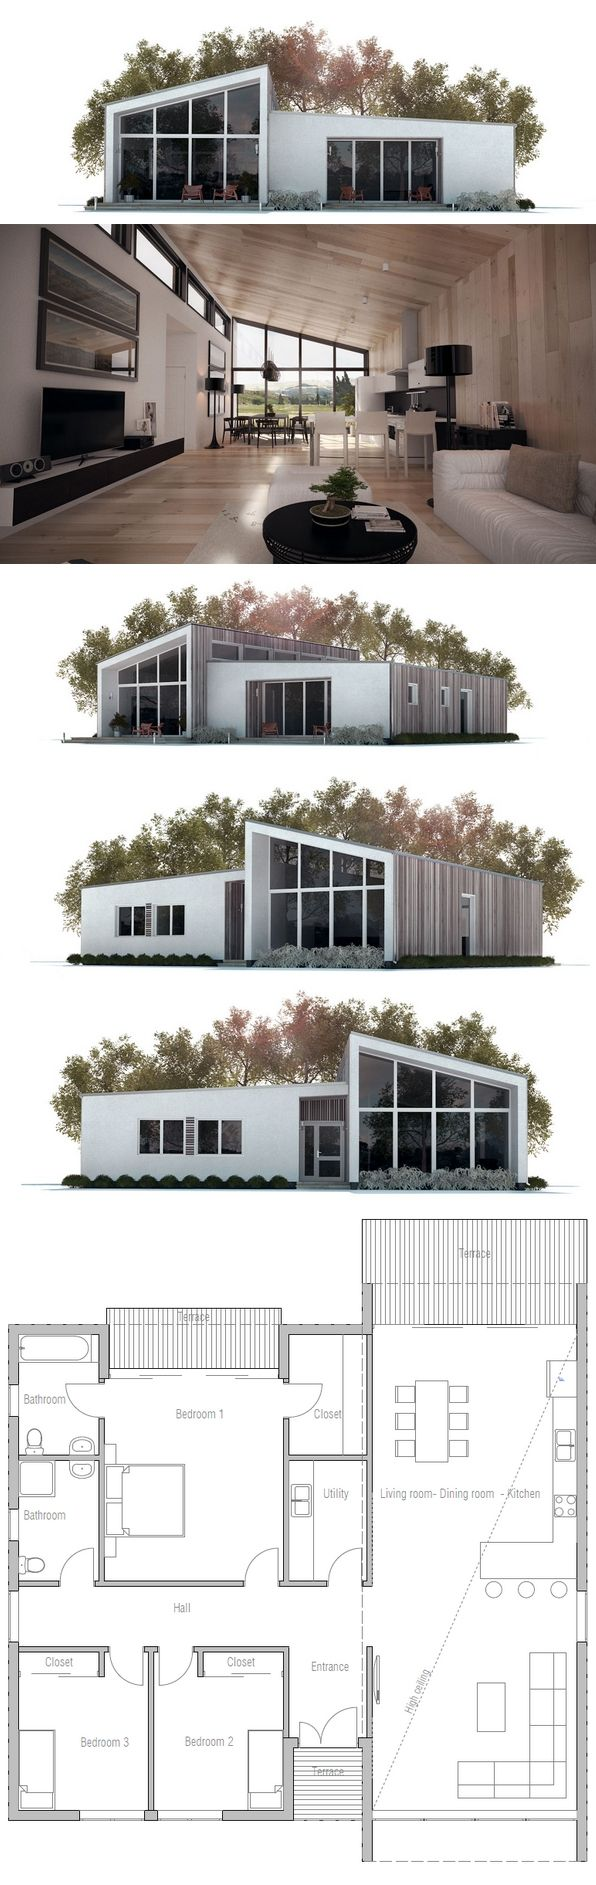 1000+ images about plans,Sketches,Visualizations ,perspective on ... - ^